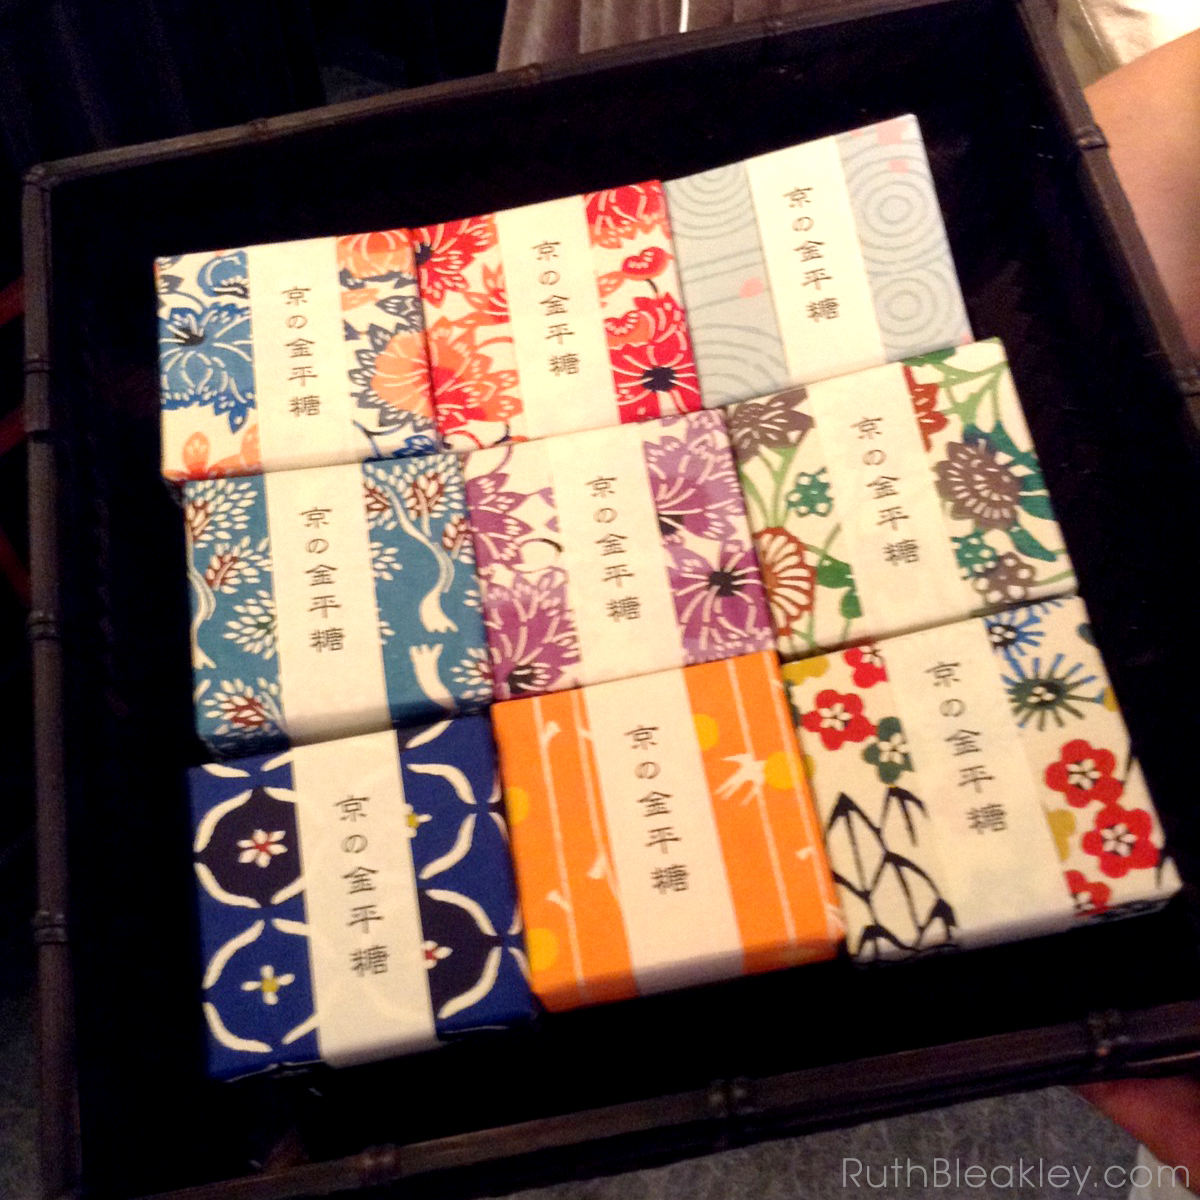 Ruth visits Suzuki Shofudo in Kyoto Japan for Katazome Washi Paper - candy boxes